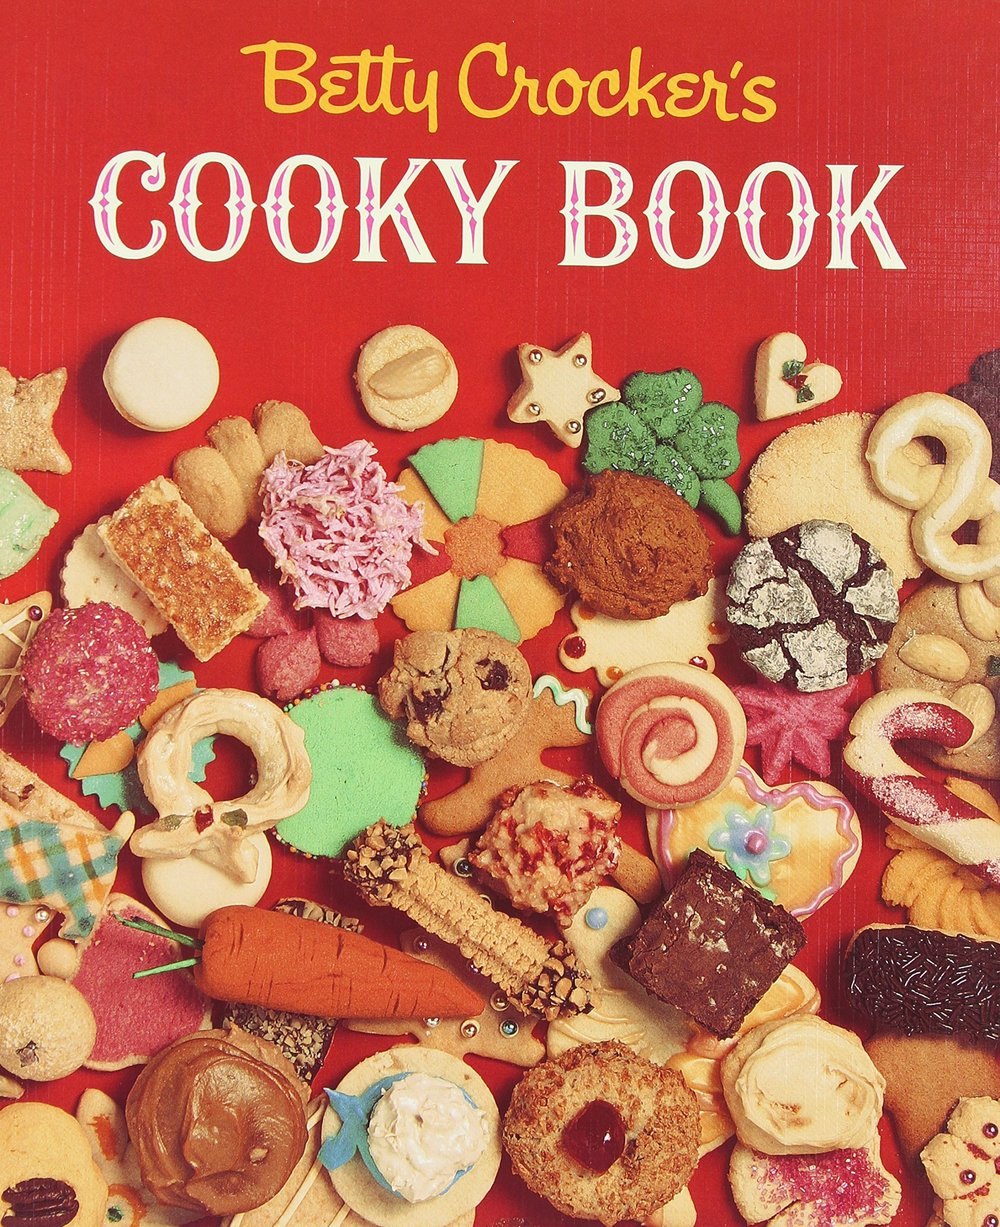 This book is responsible for my brain constantly confusing 'cookie' and 'cooky'.